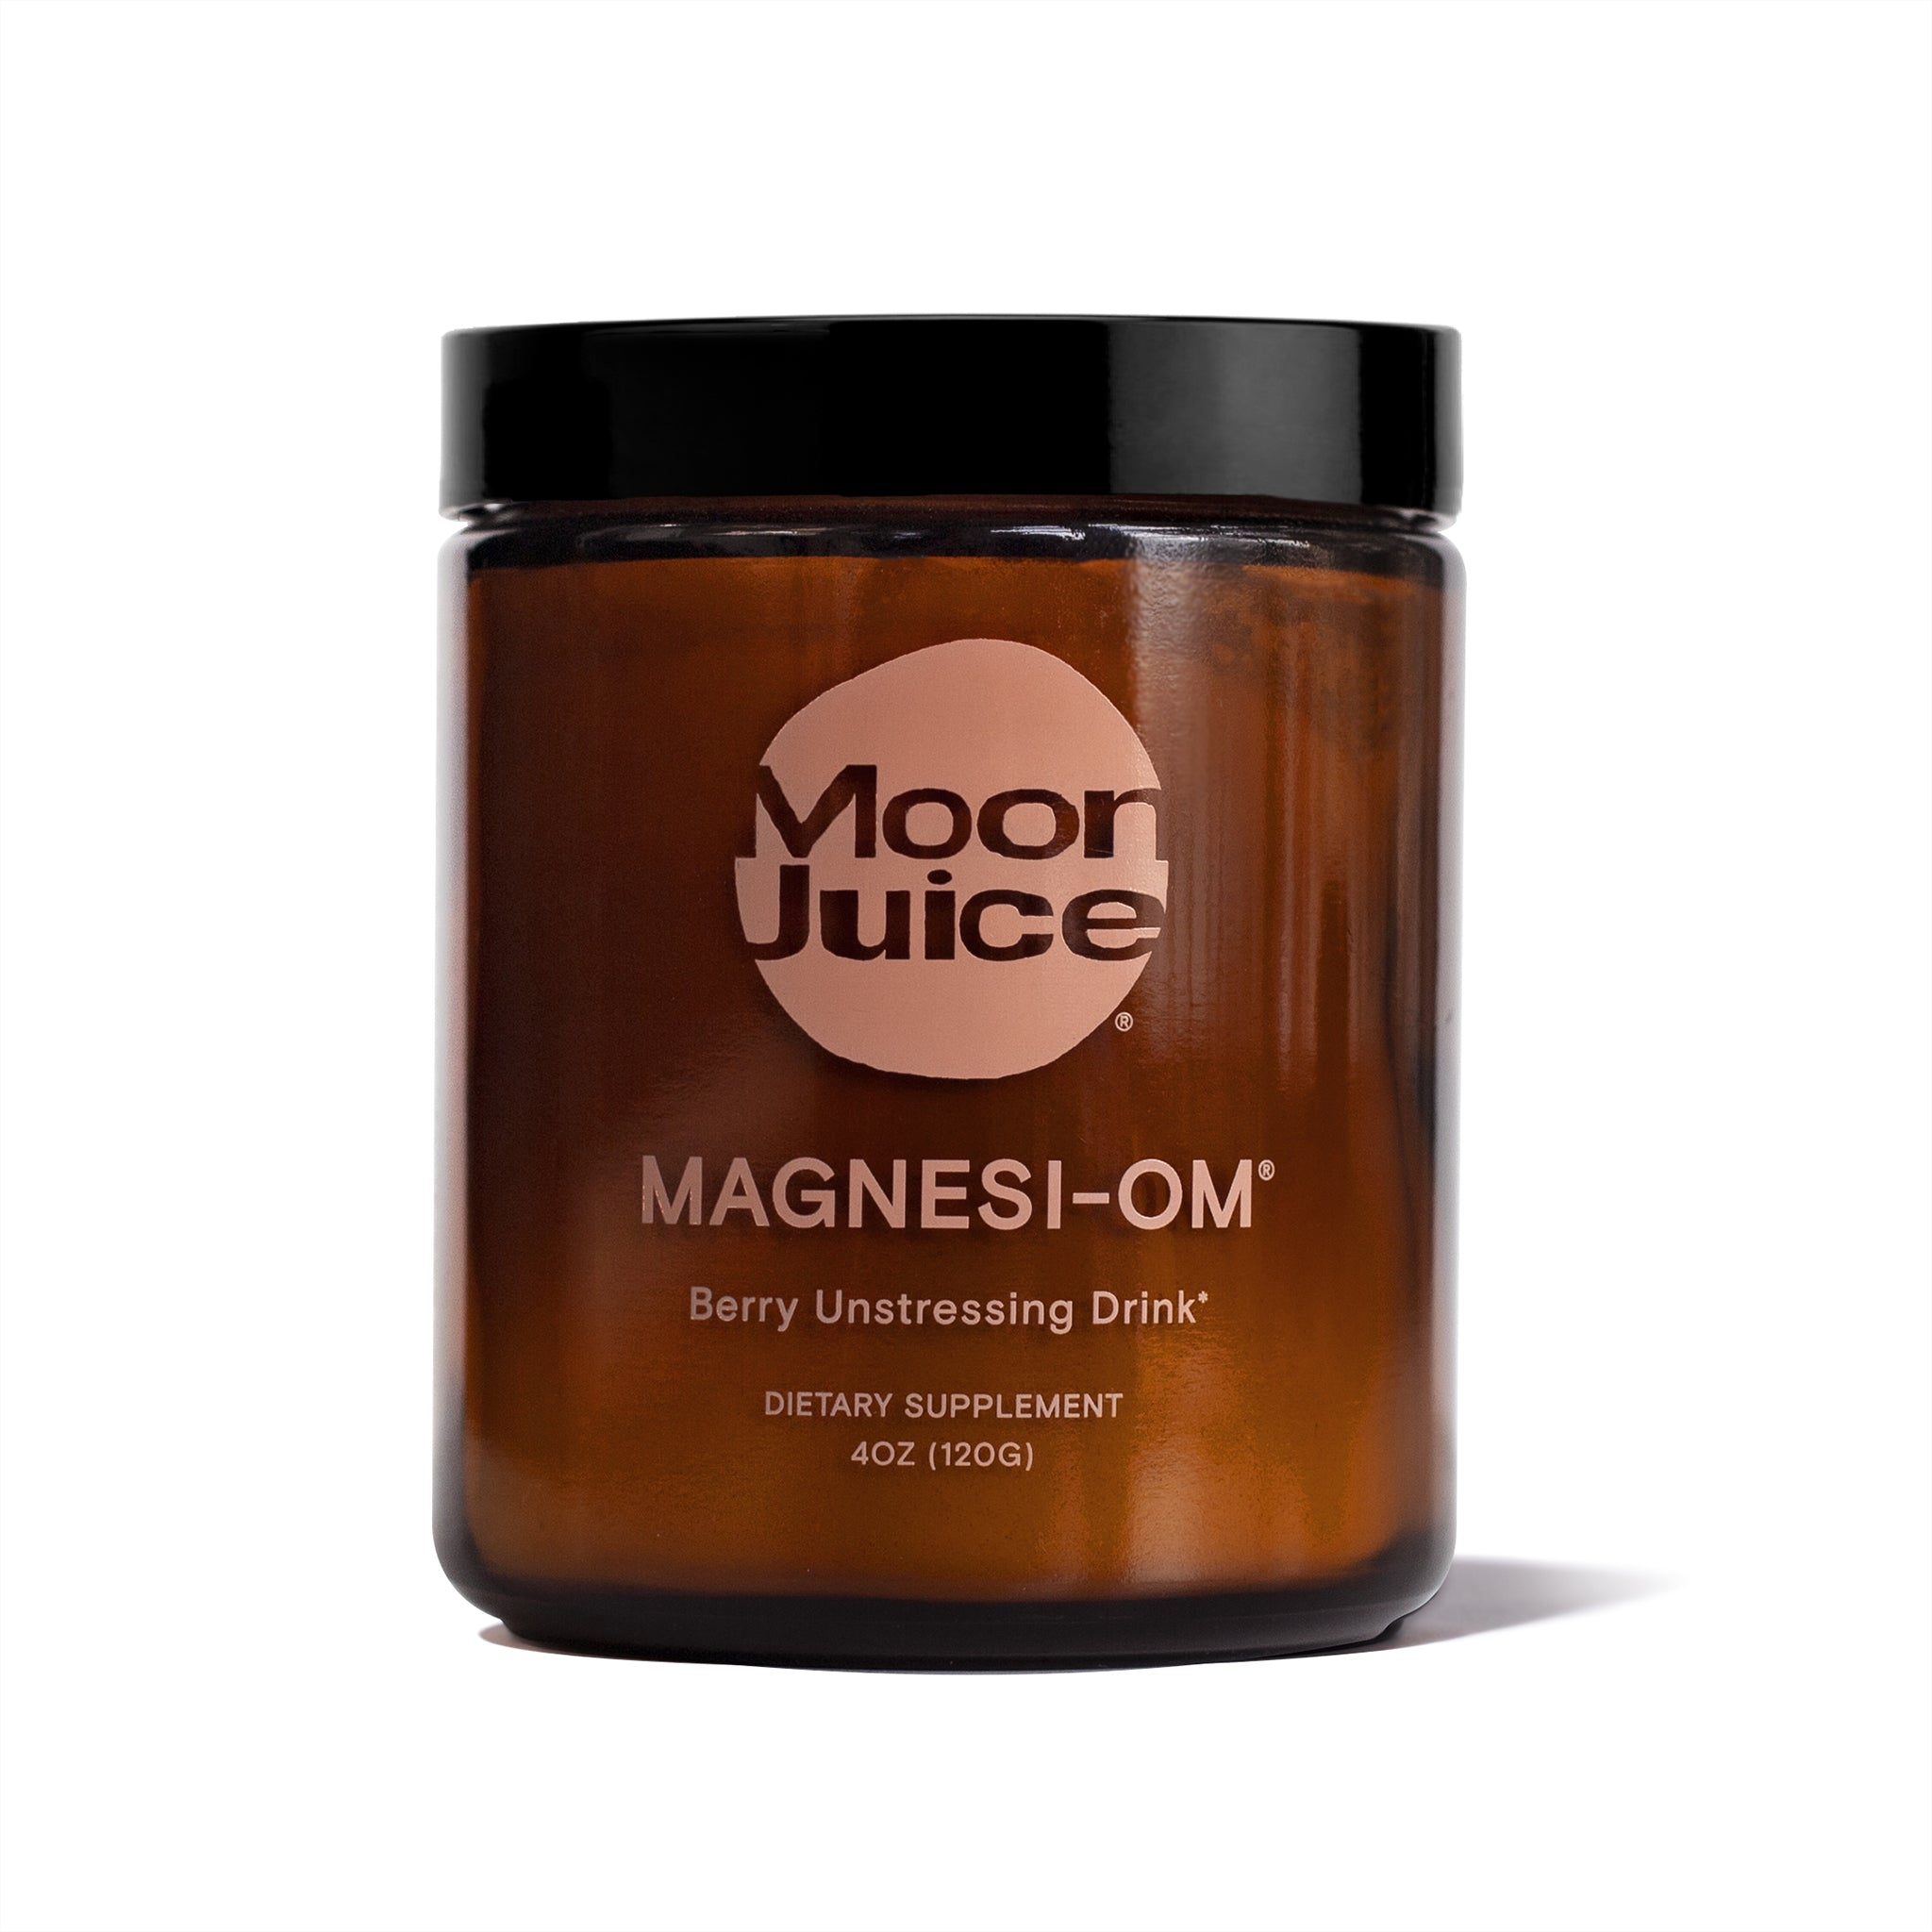 Magnesi-Om - Berry Unstressing Drink